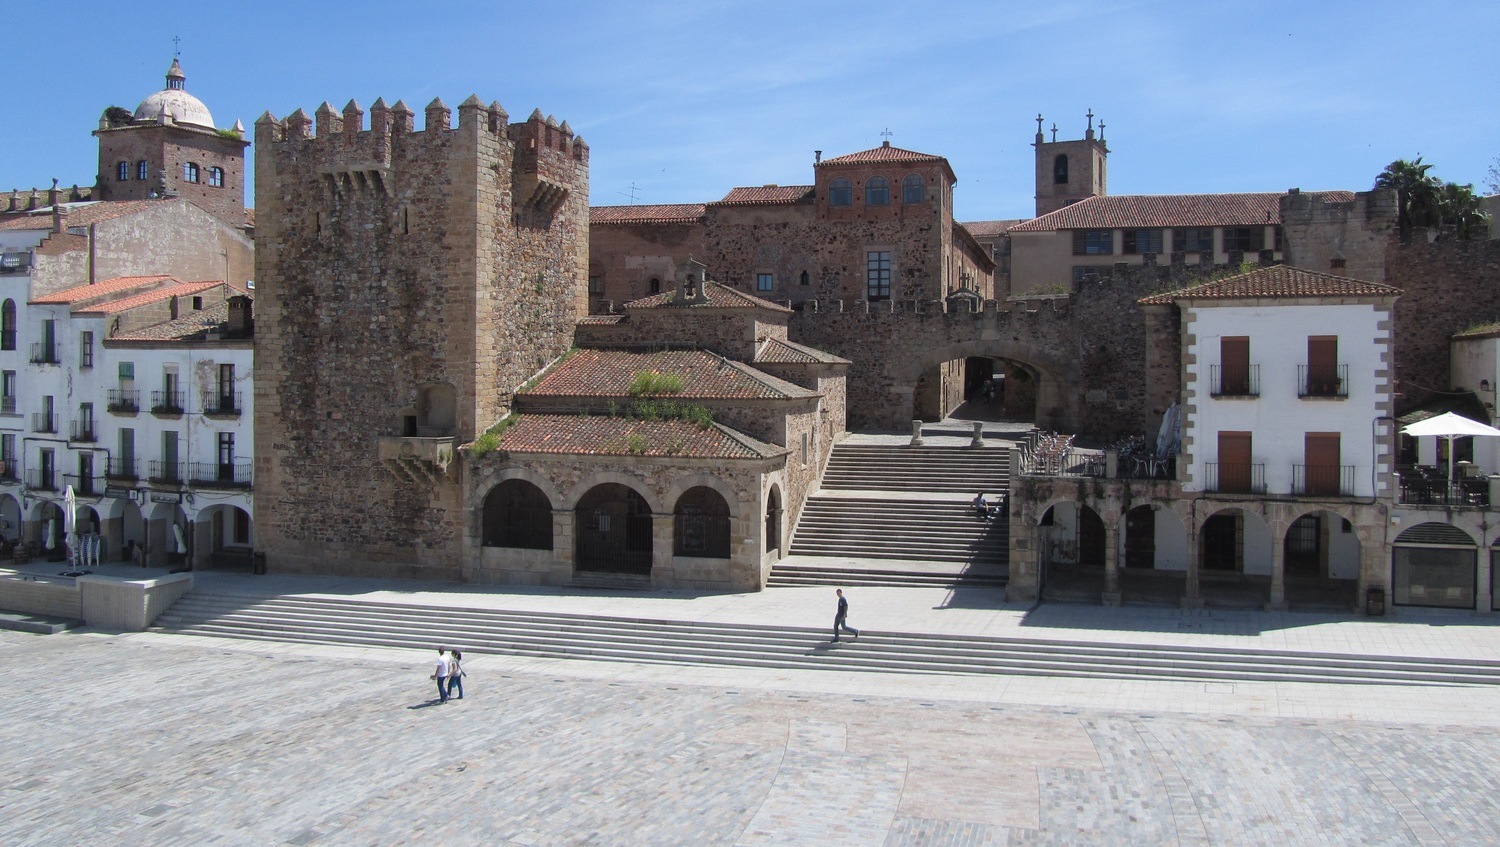 Plaza Mayor in Cáceres city, Cáceres